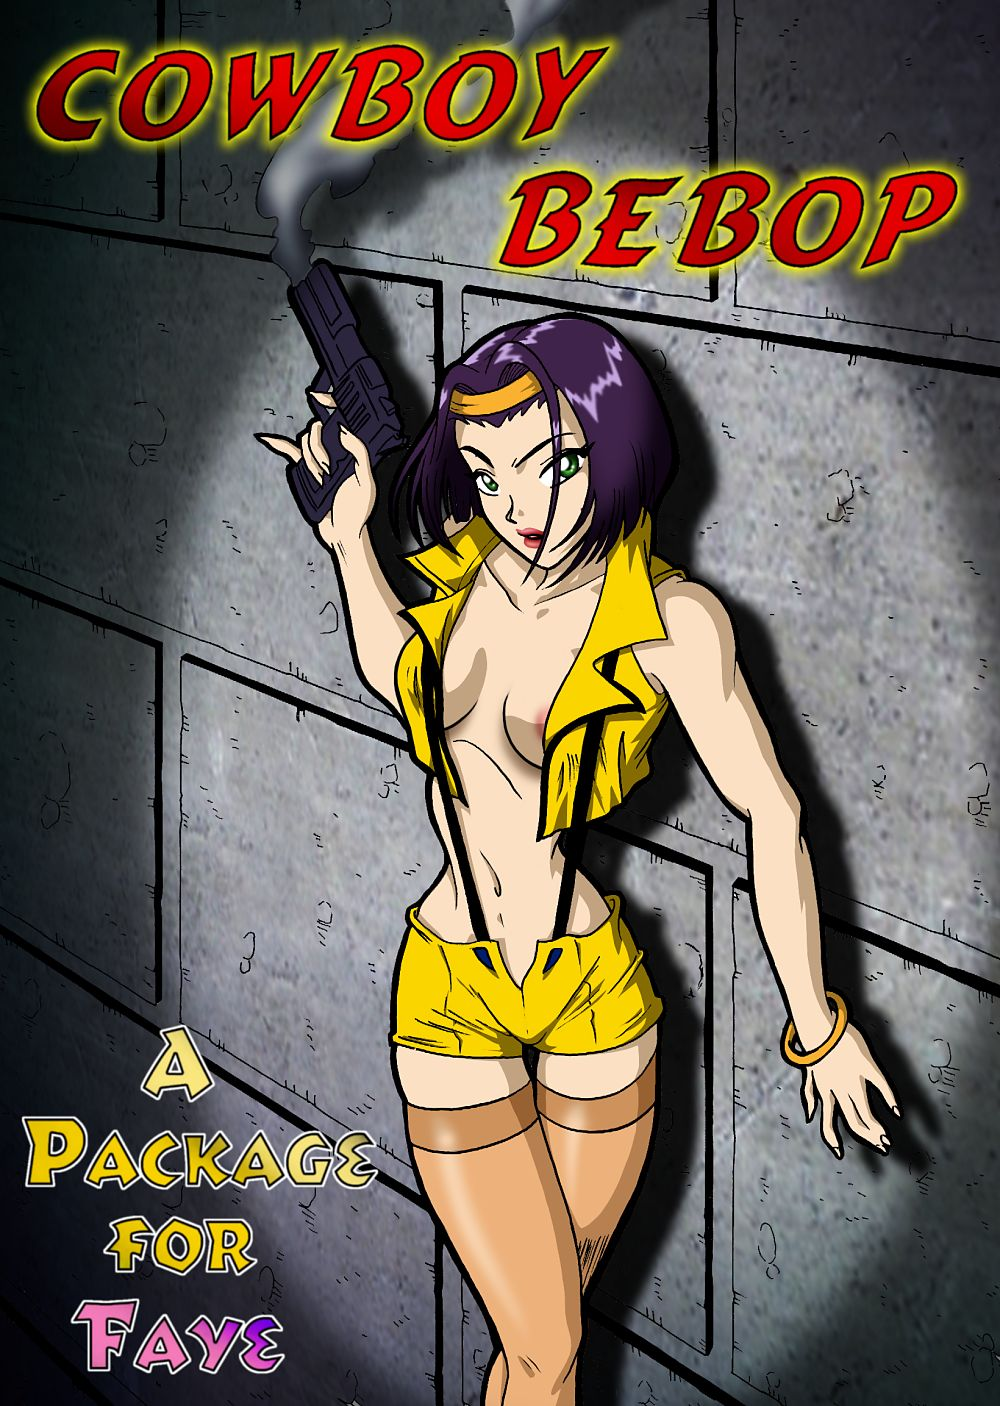 Cowboy Bebop Hentai - A package for Faye page 1